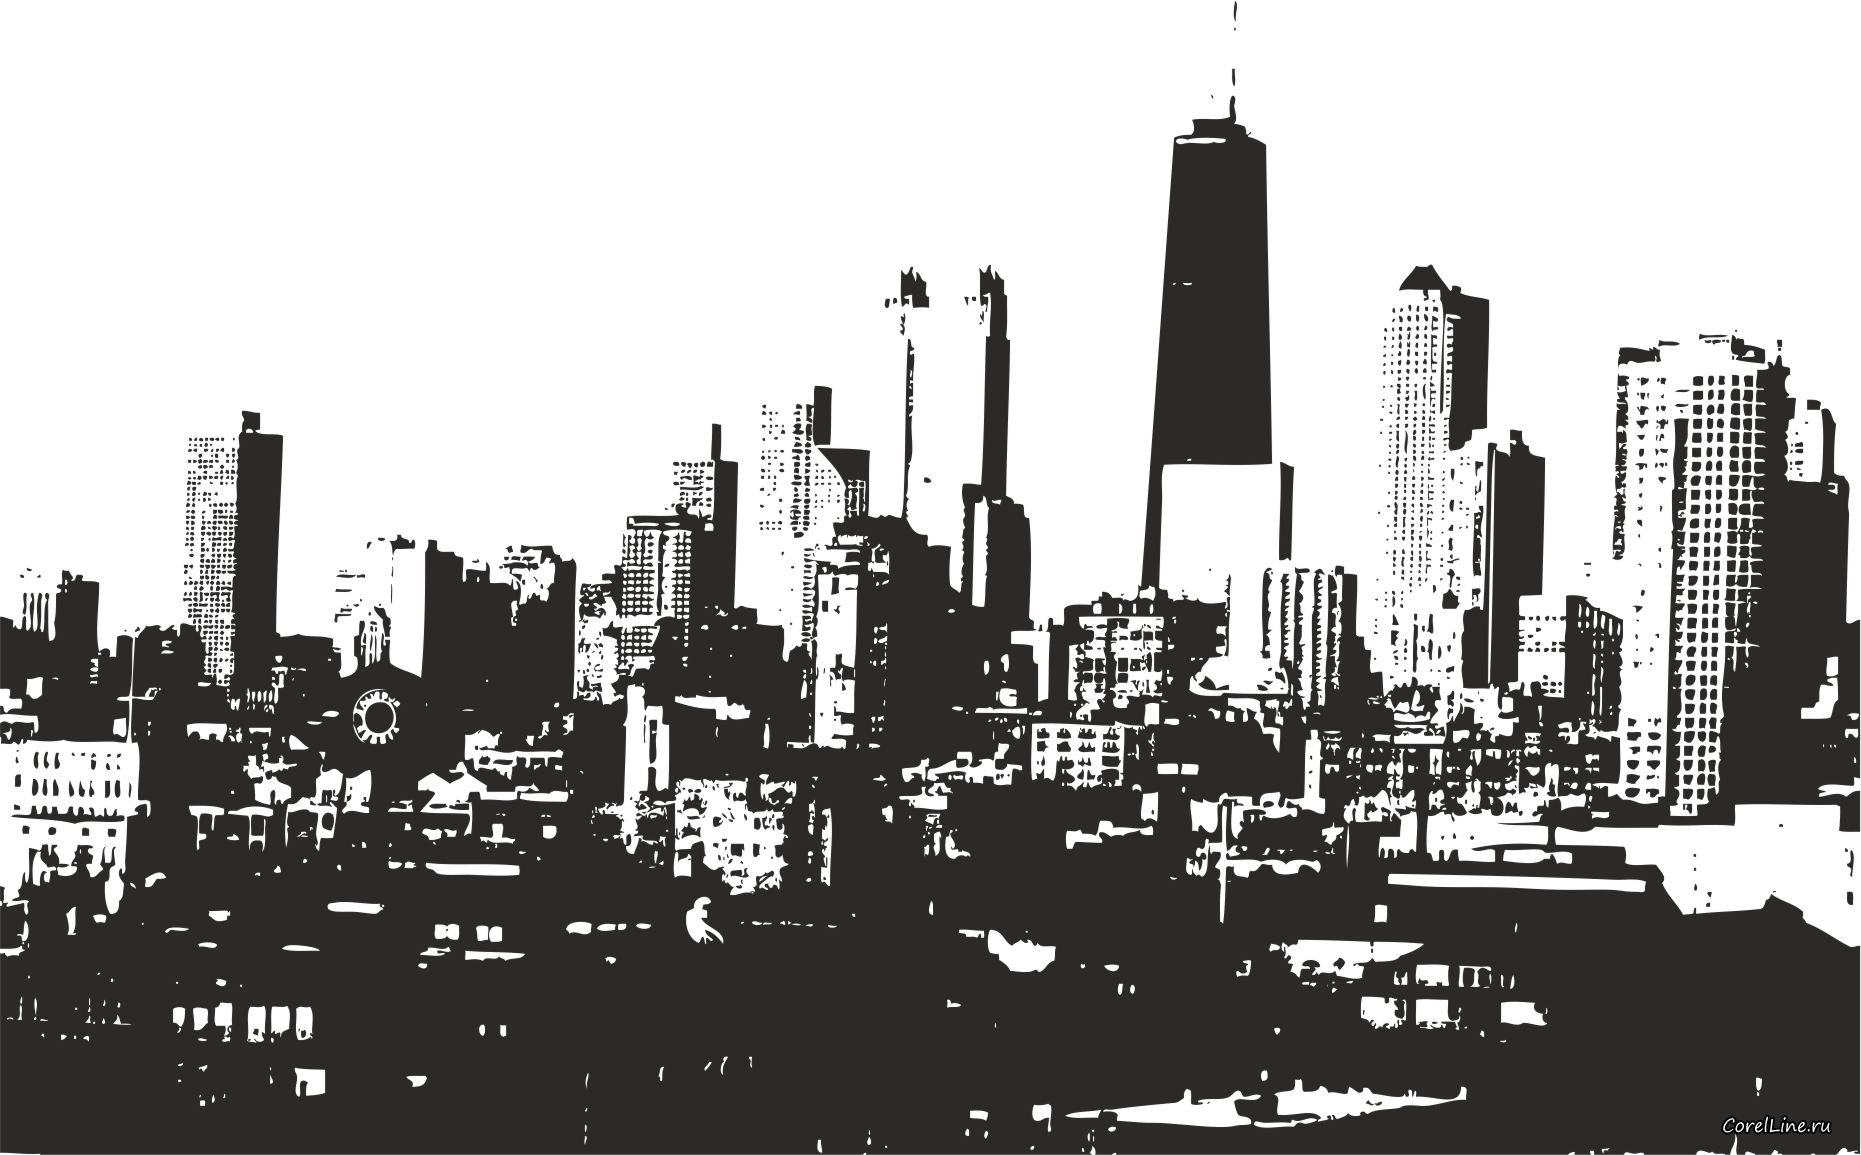 City building clipart black and white 6 » Clipart Station